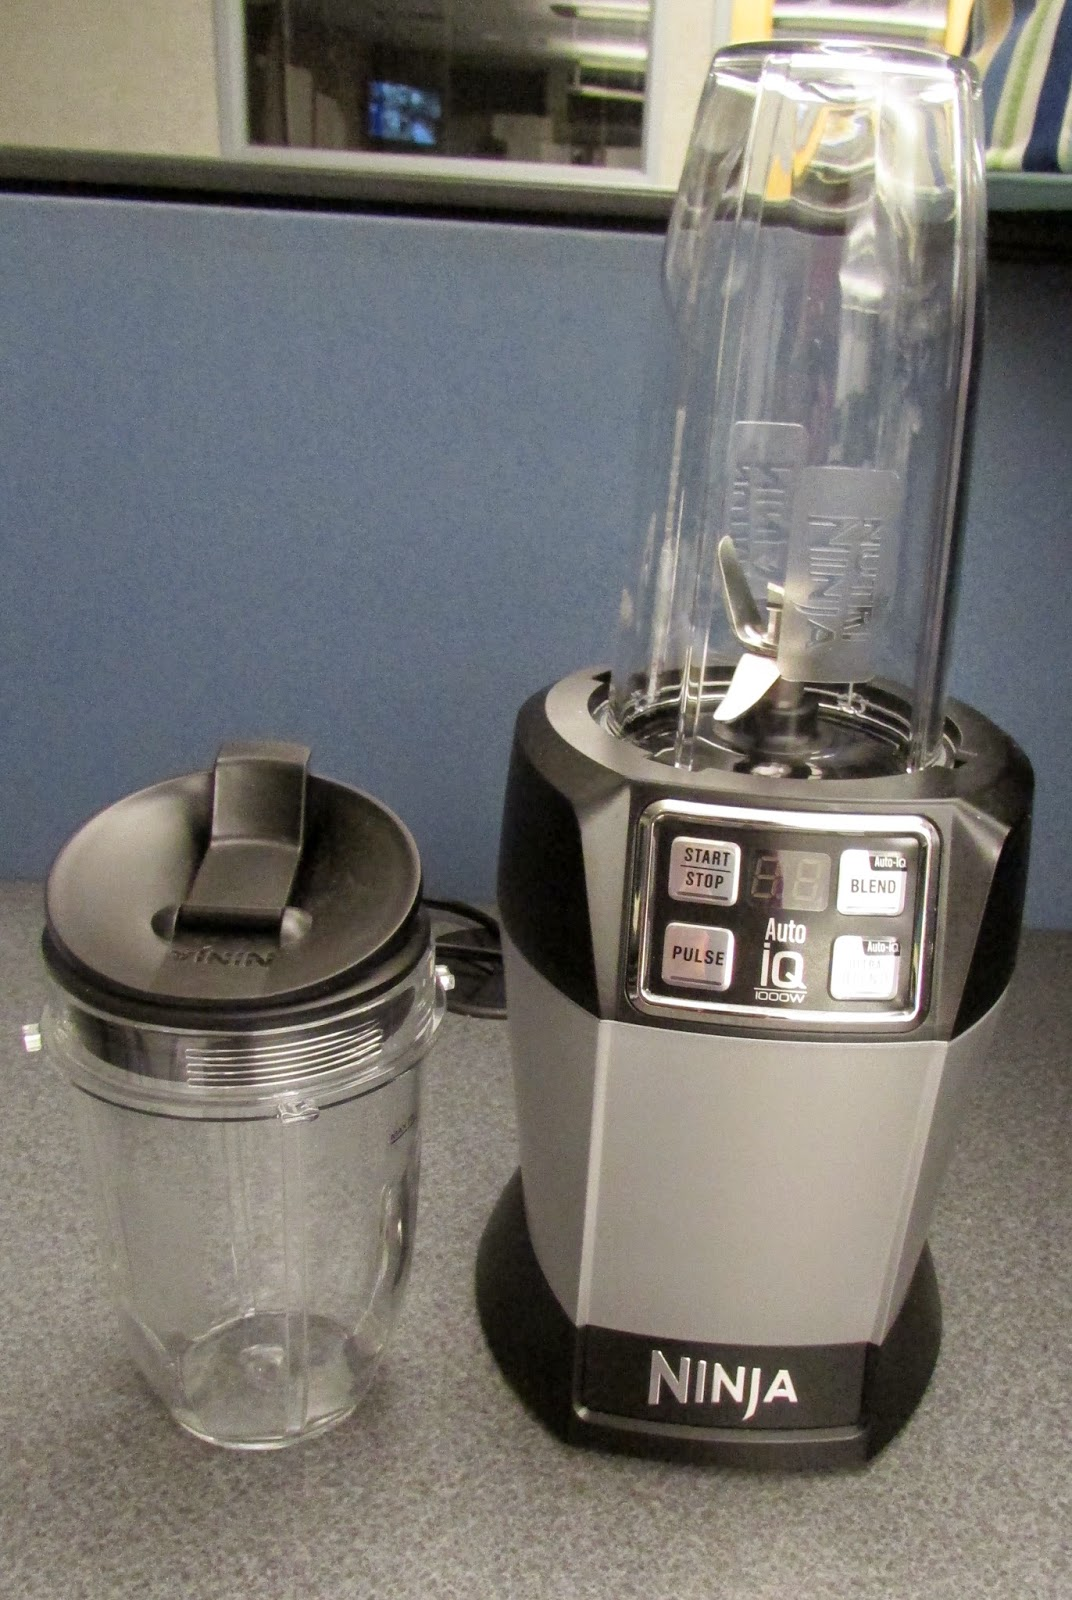 ninja professional blender instructions